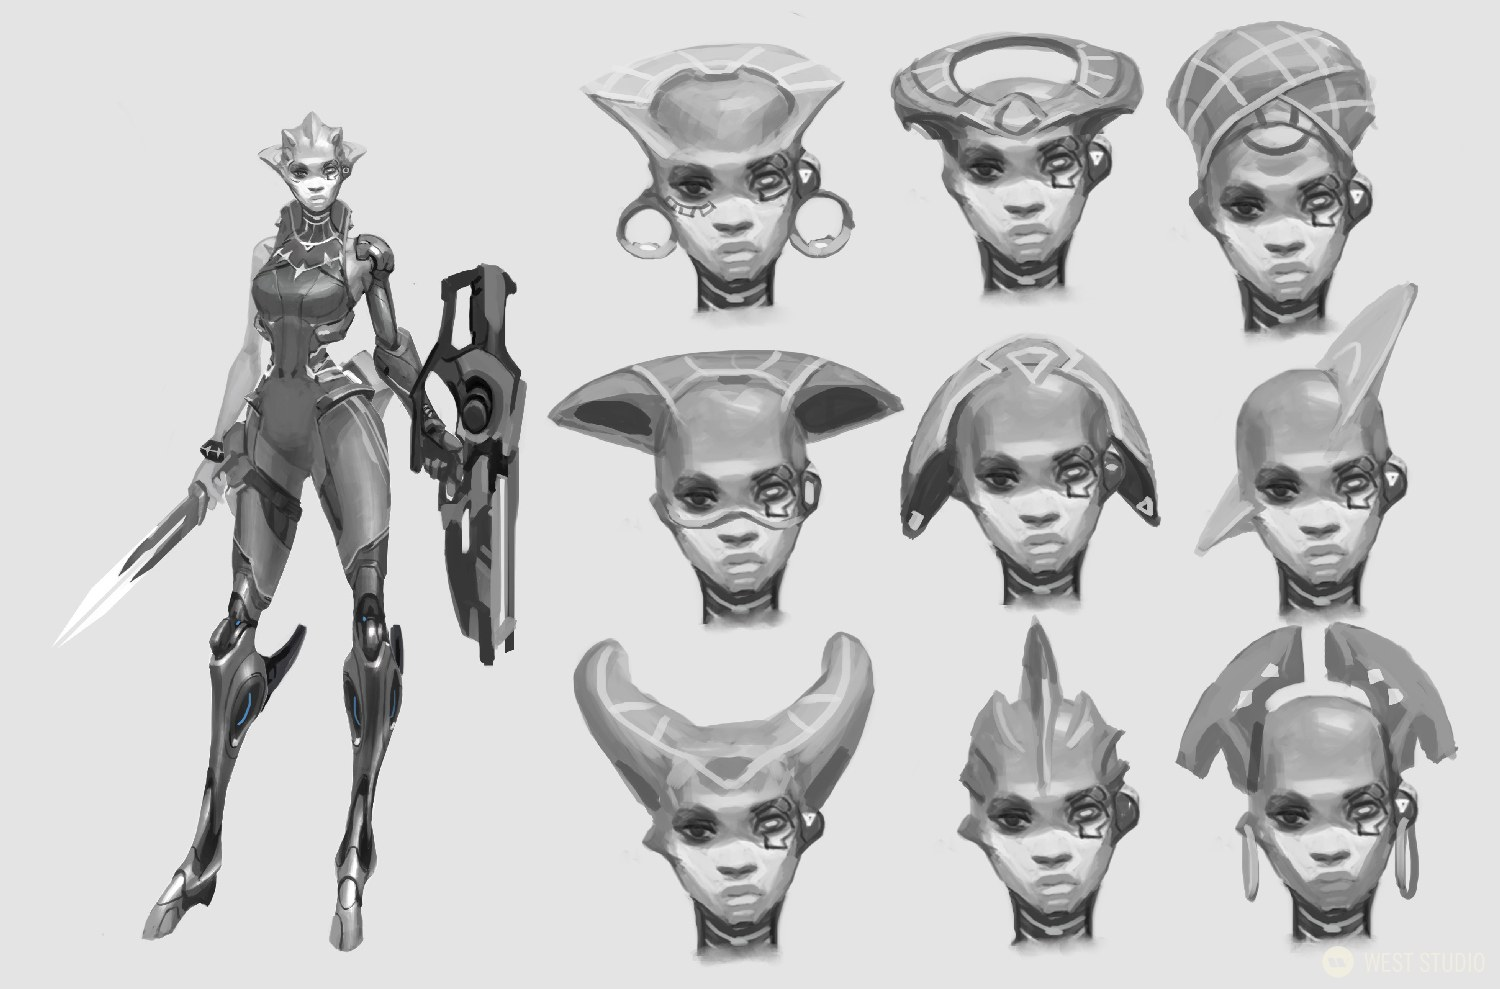 A black and white concept art image featuring a design of a sci-fi alien character from the video game, Drifters, plus 6 different options for her head design.